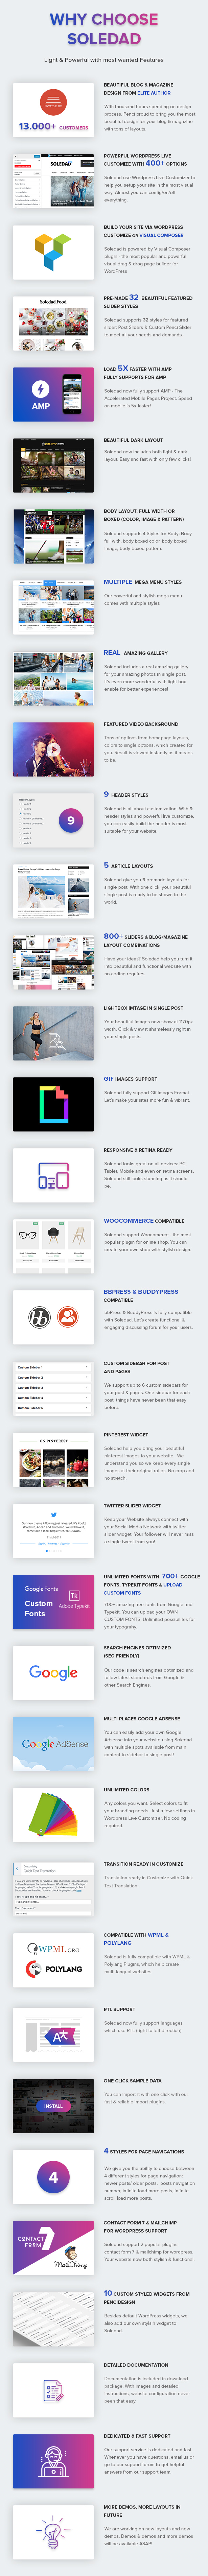 Soledad WordPress Blog Theme  - B17 ChooseSoledad4 - Soledad – Multi-Concept Blog/Magazine/News AMP WordPress Theme